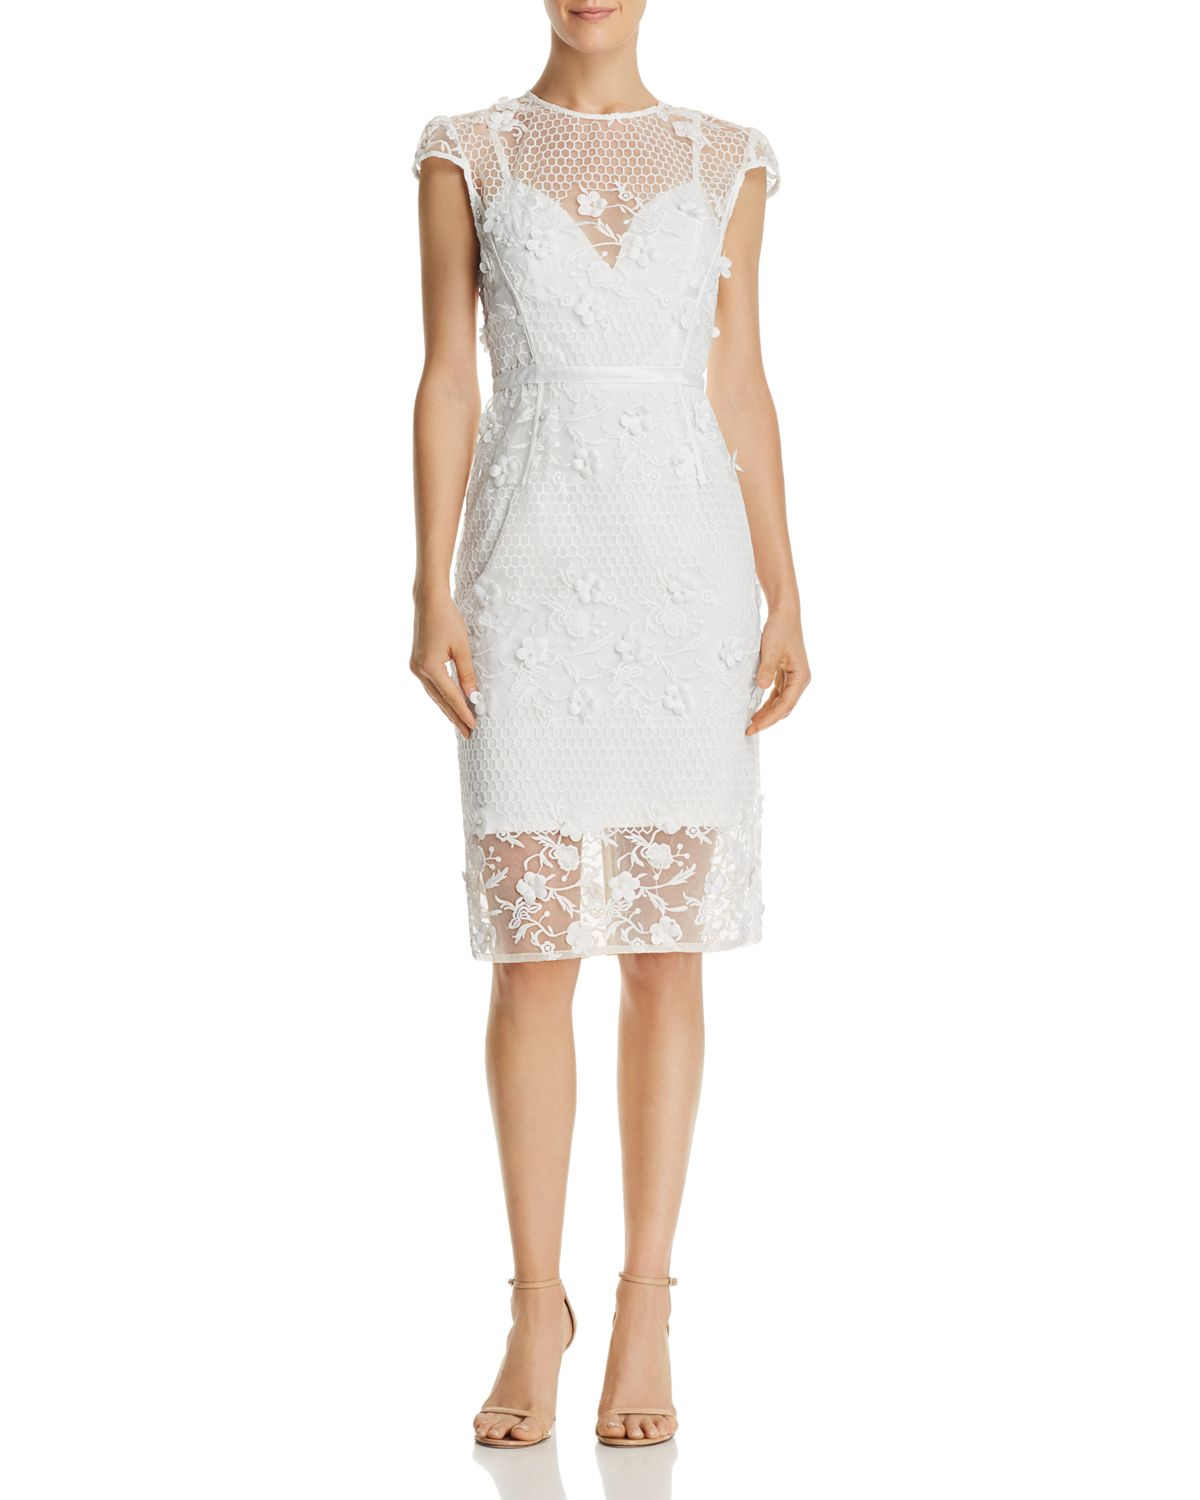 Osa Lace Dress by Bronx And Banco